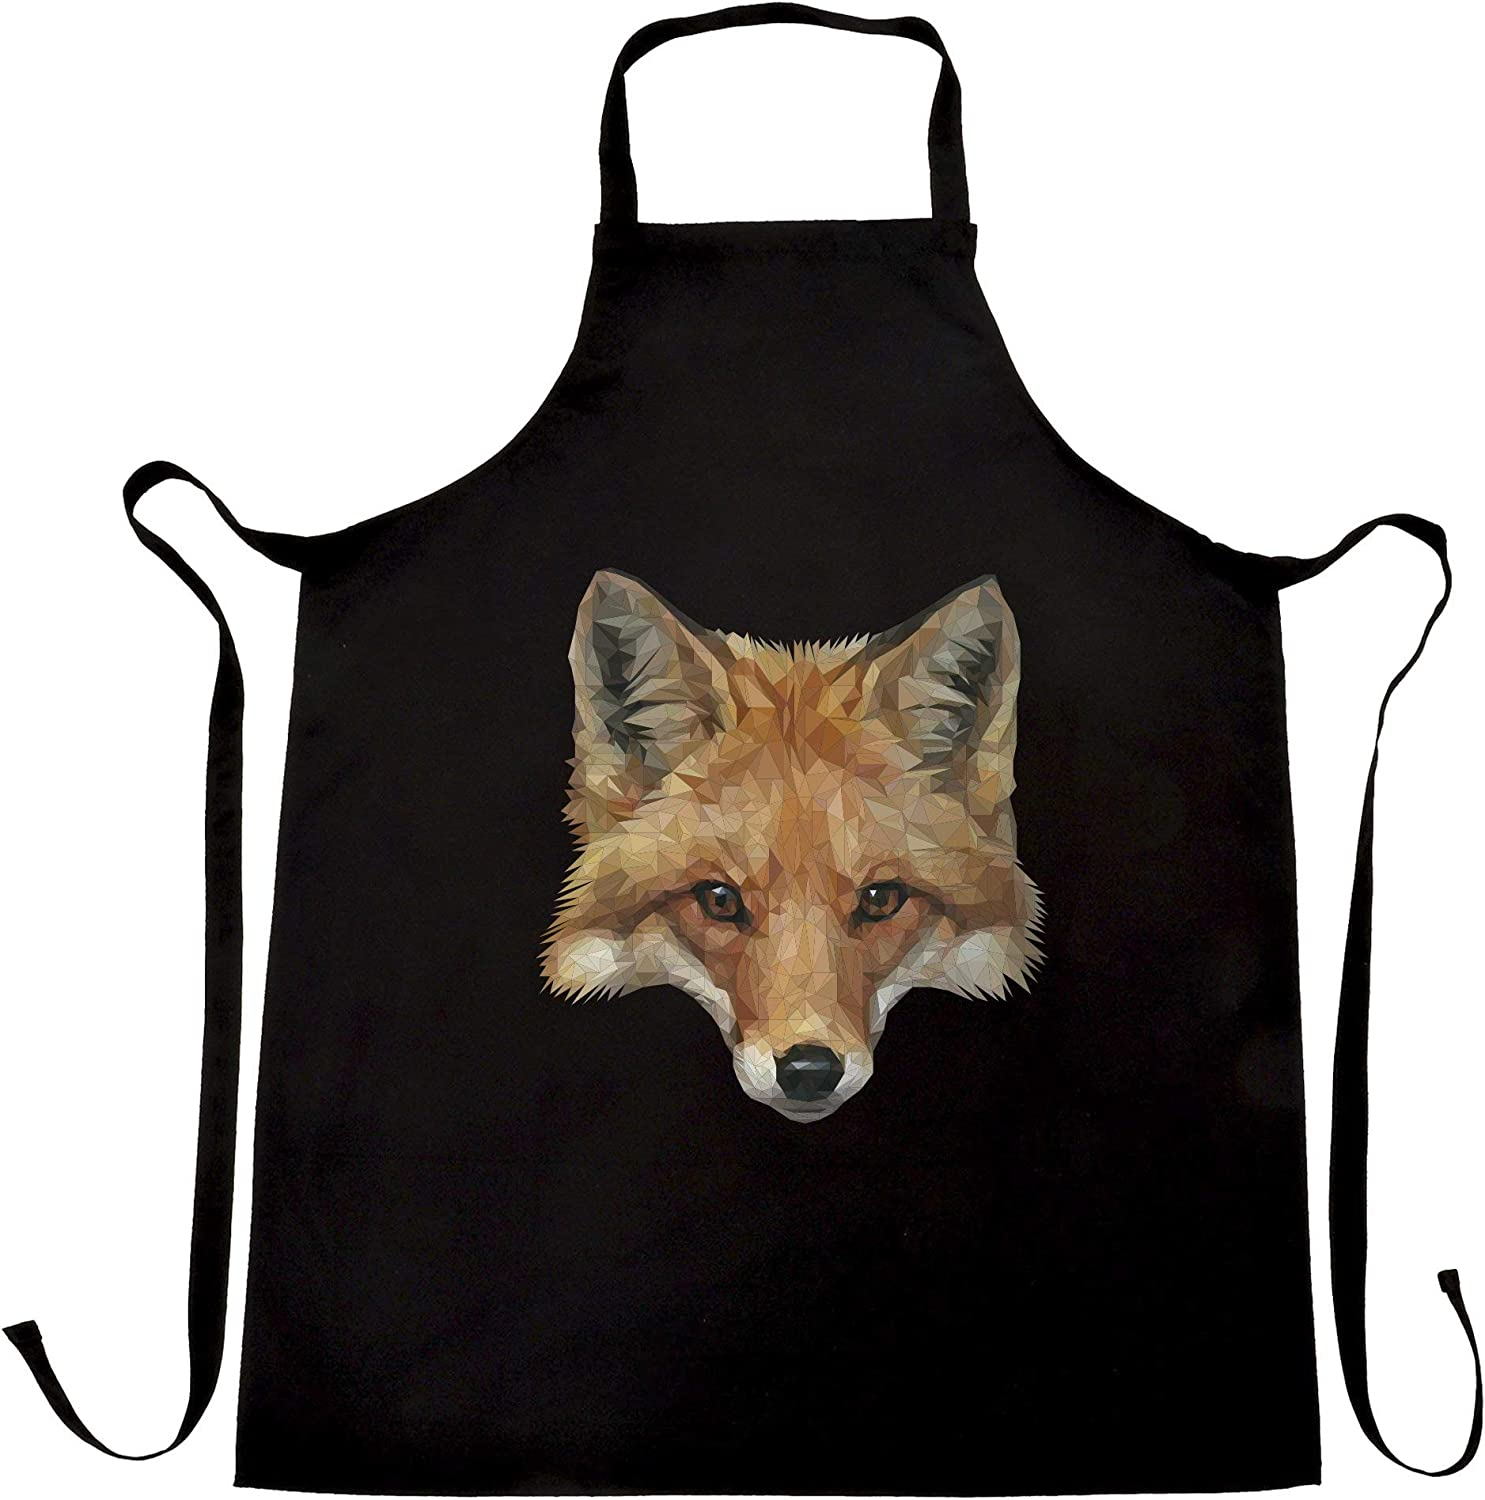 Details about  /Animal Art Chef/'s Apron Low Poly Fox Graphic Wildlife Predator City Sly Cute